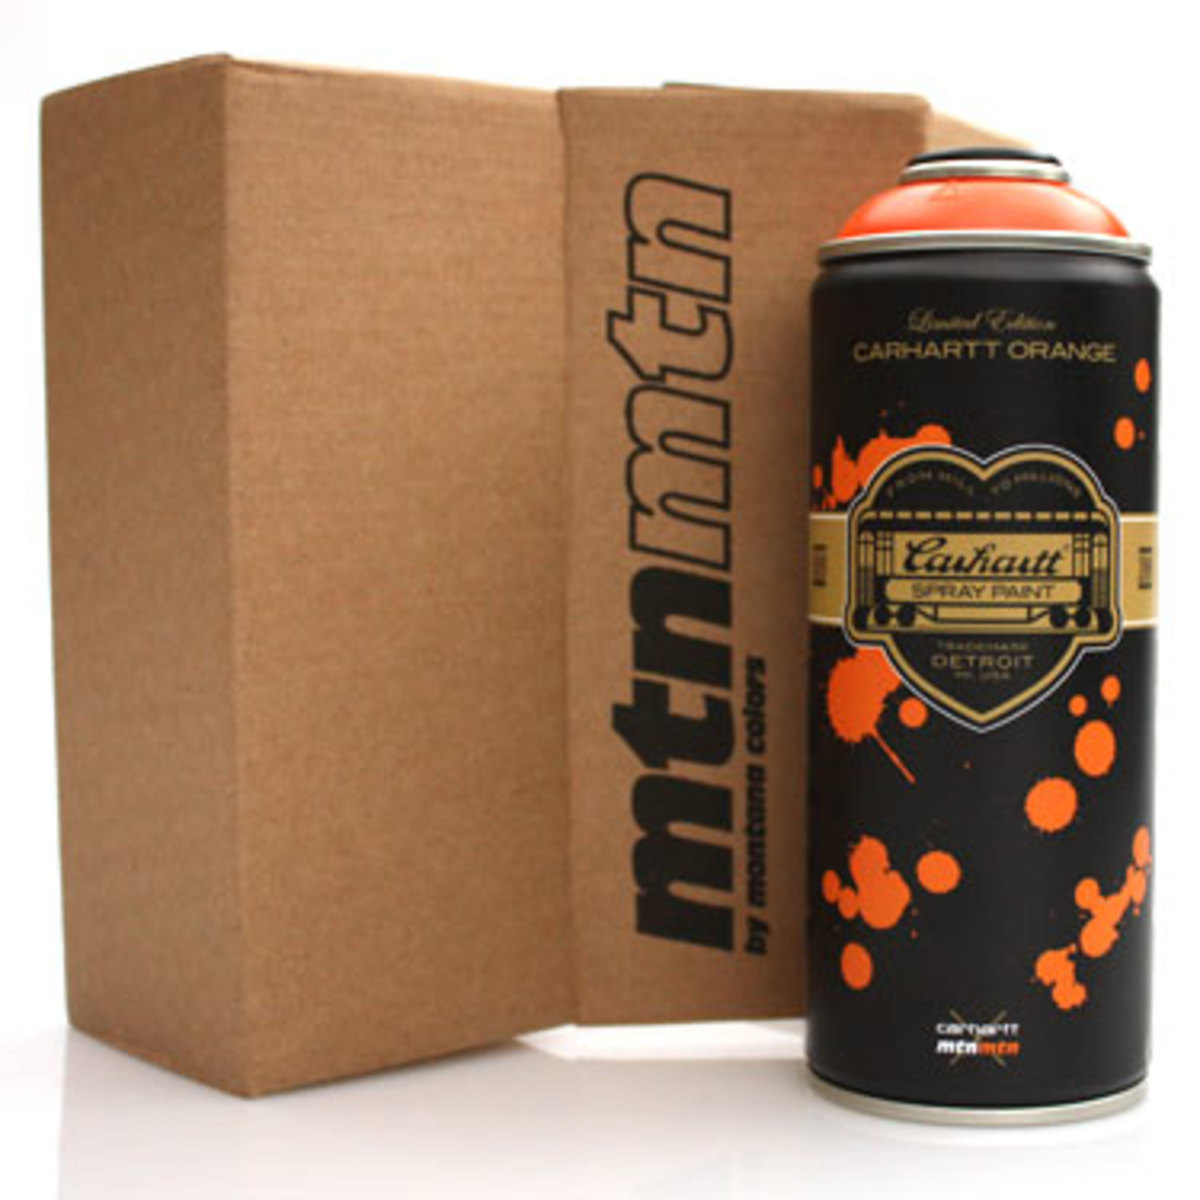 carhartt_montana_spray_paint_orange_2